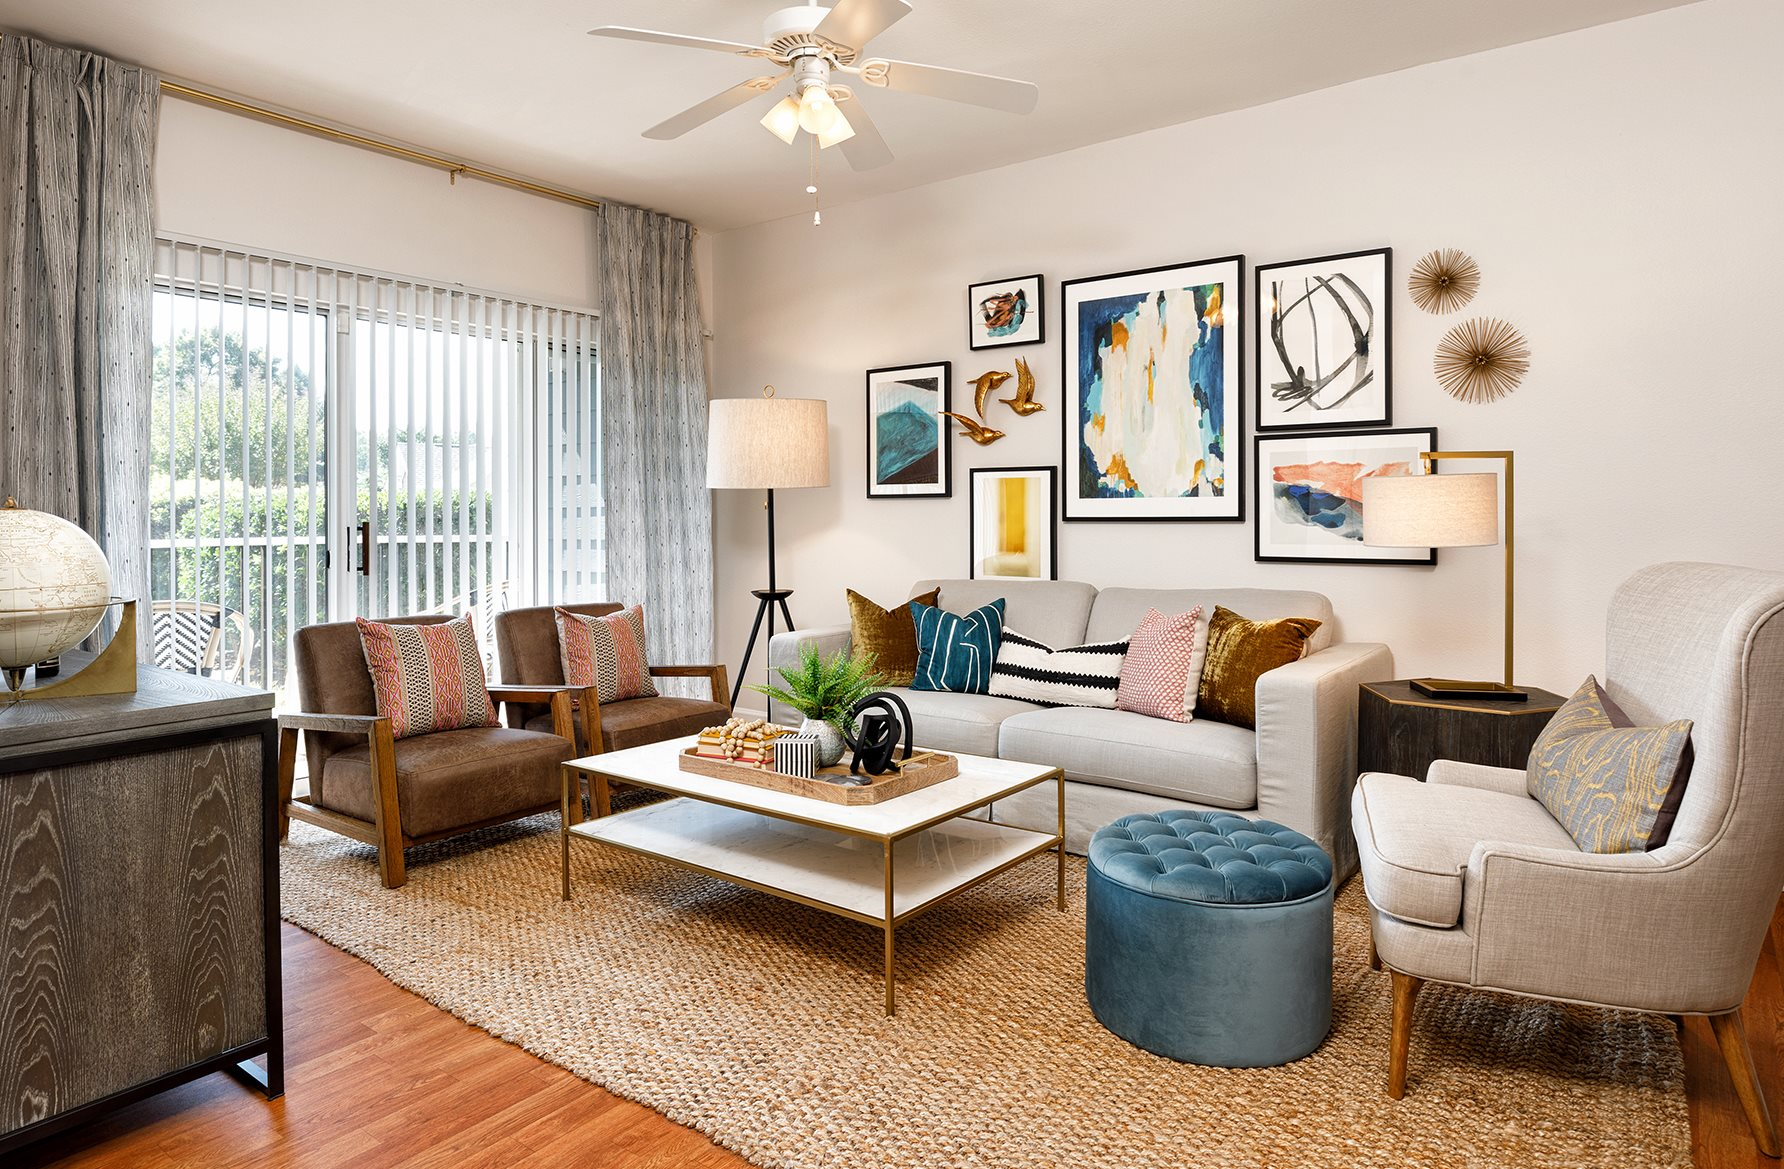 Astonishing Bexley At Brier Creek Luxury Apartments In Raleigh Nc Complete Home Design Collection Barbaintelli Responsecom